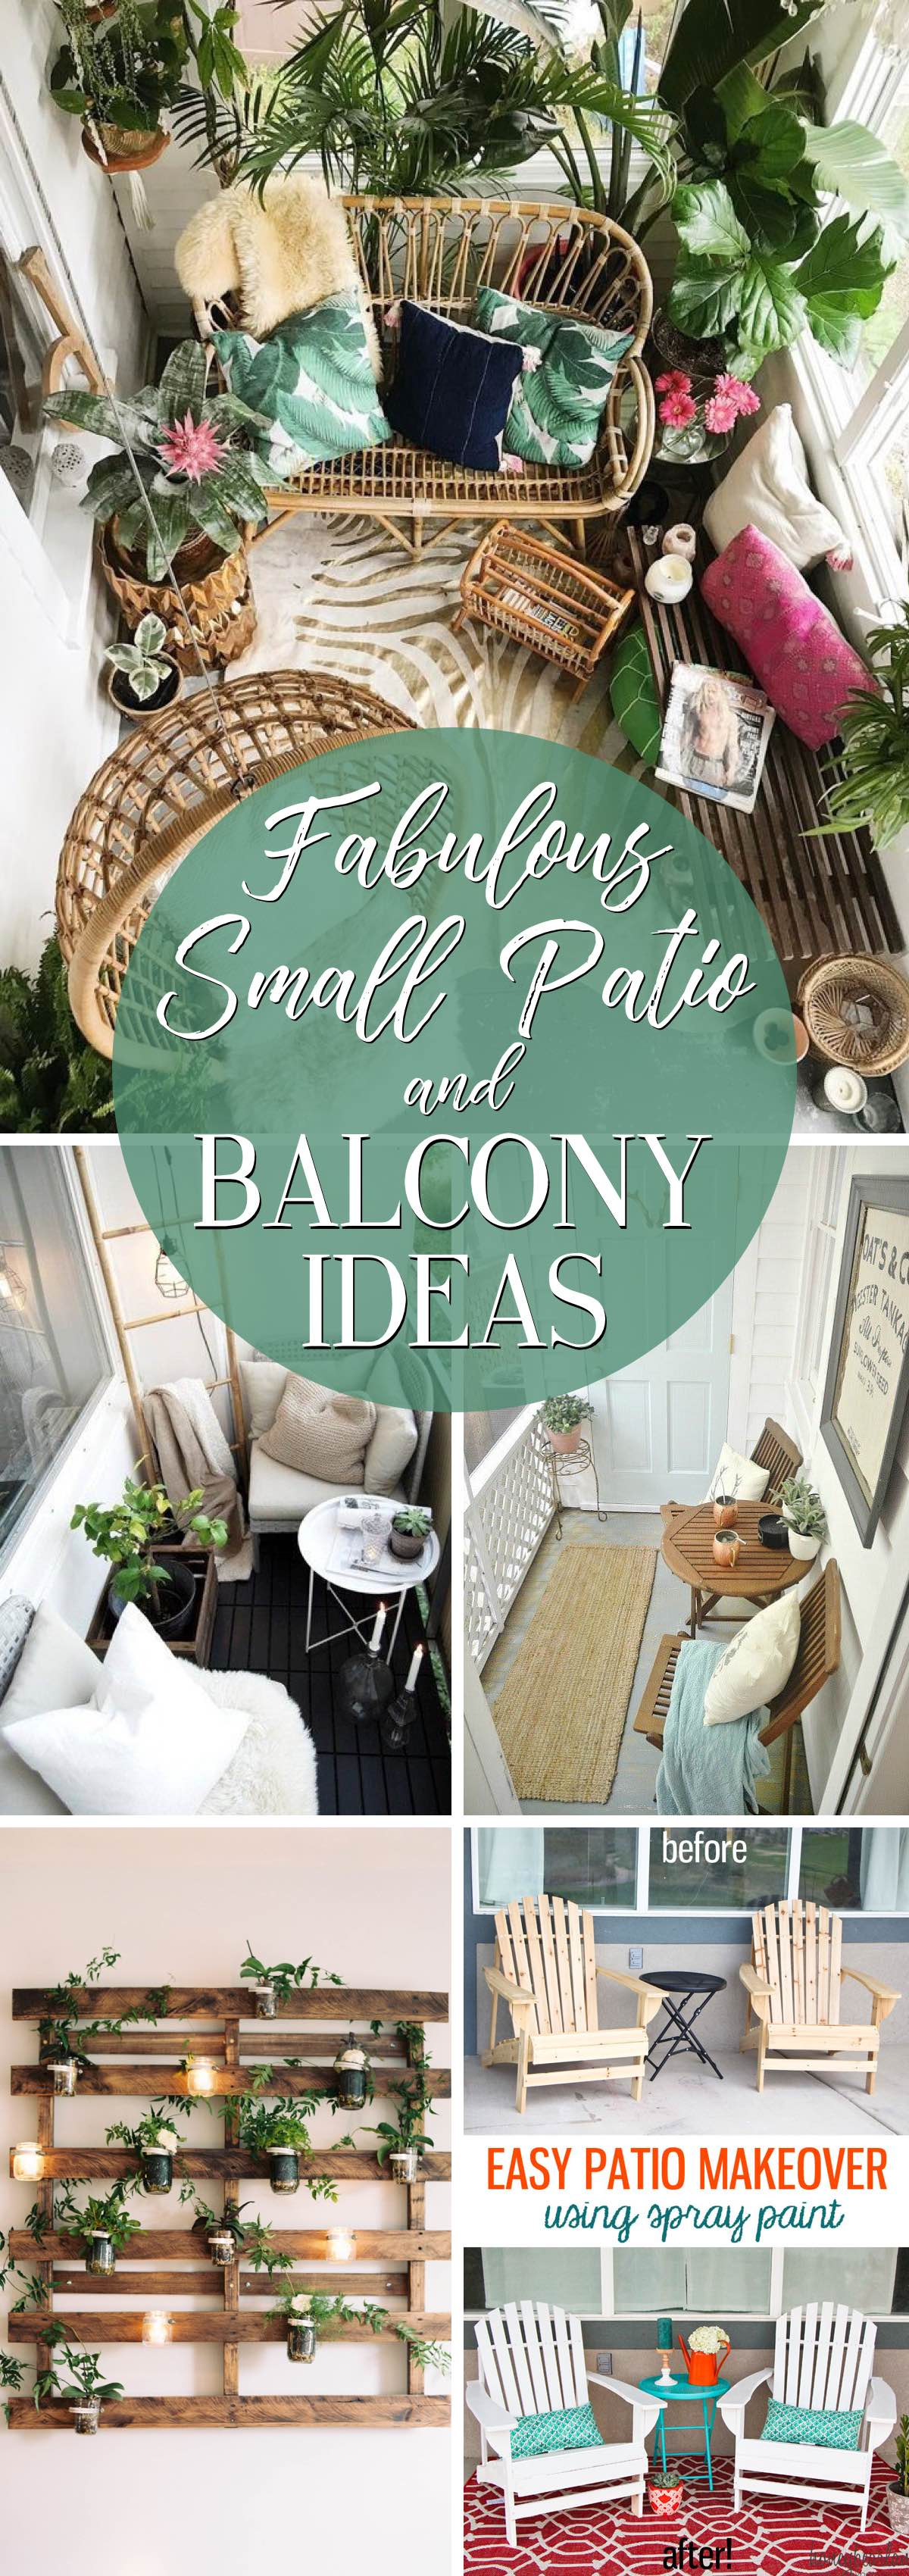 Make the Most of a Limited Space with these 19 Fabulous Small Patio and Balcony Ideas